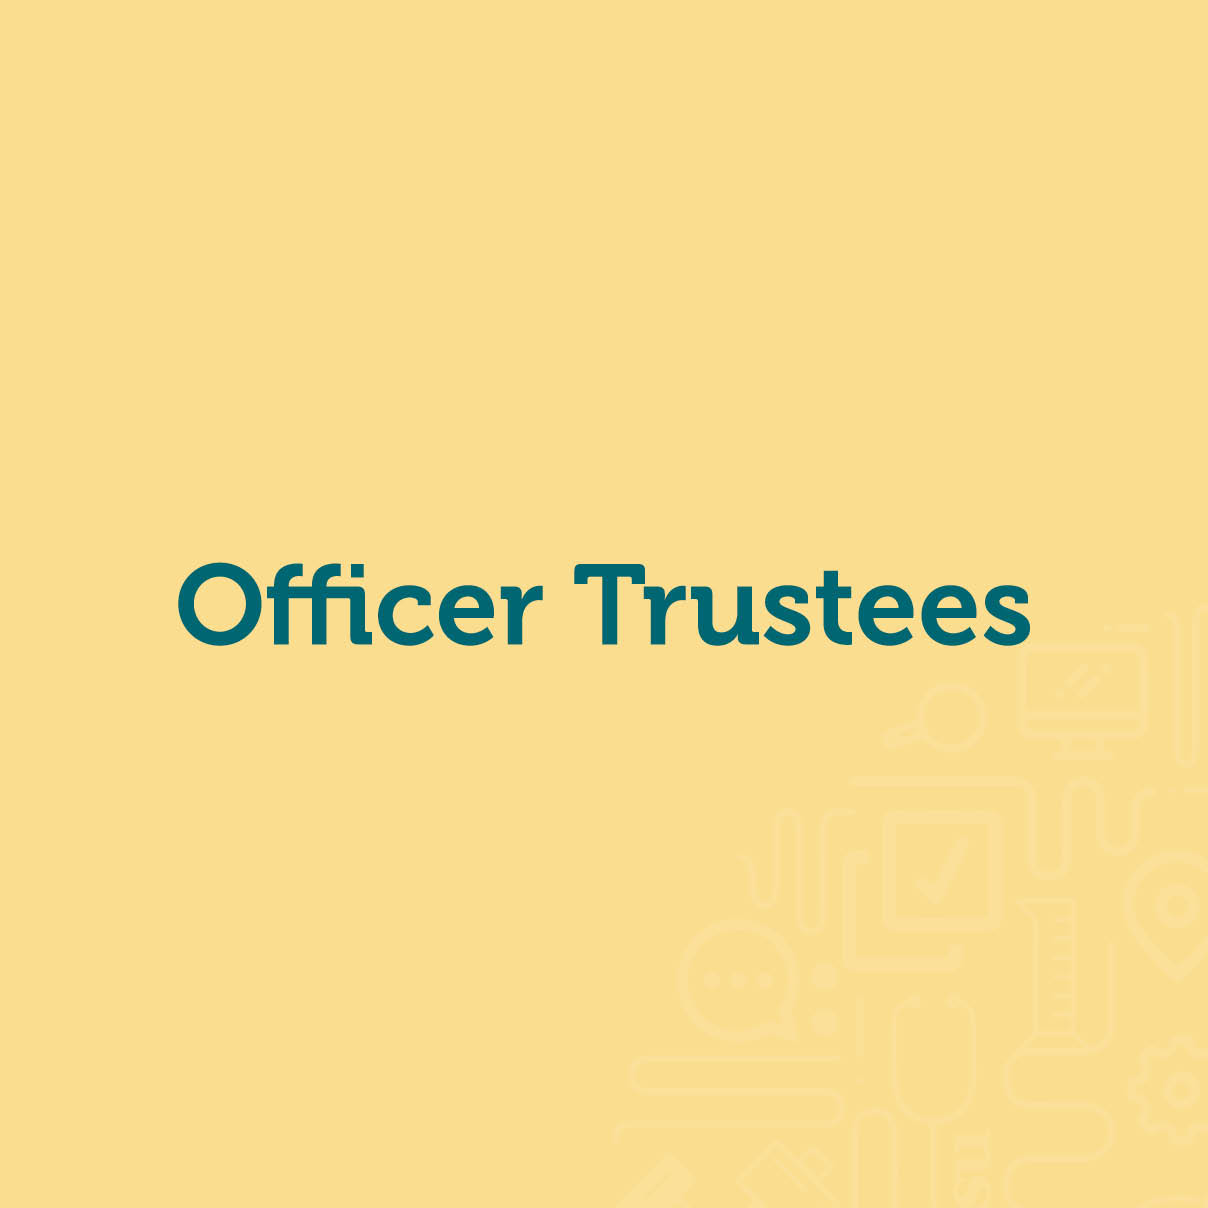 Officer Trustees